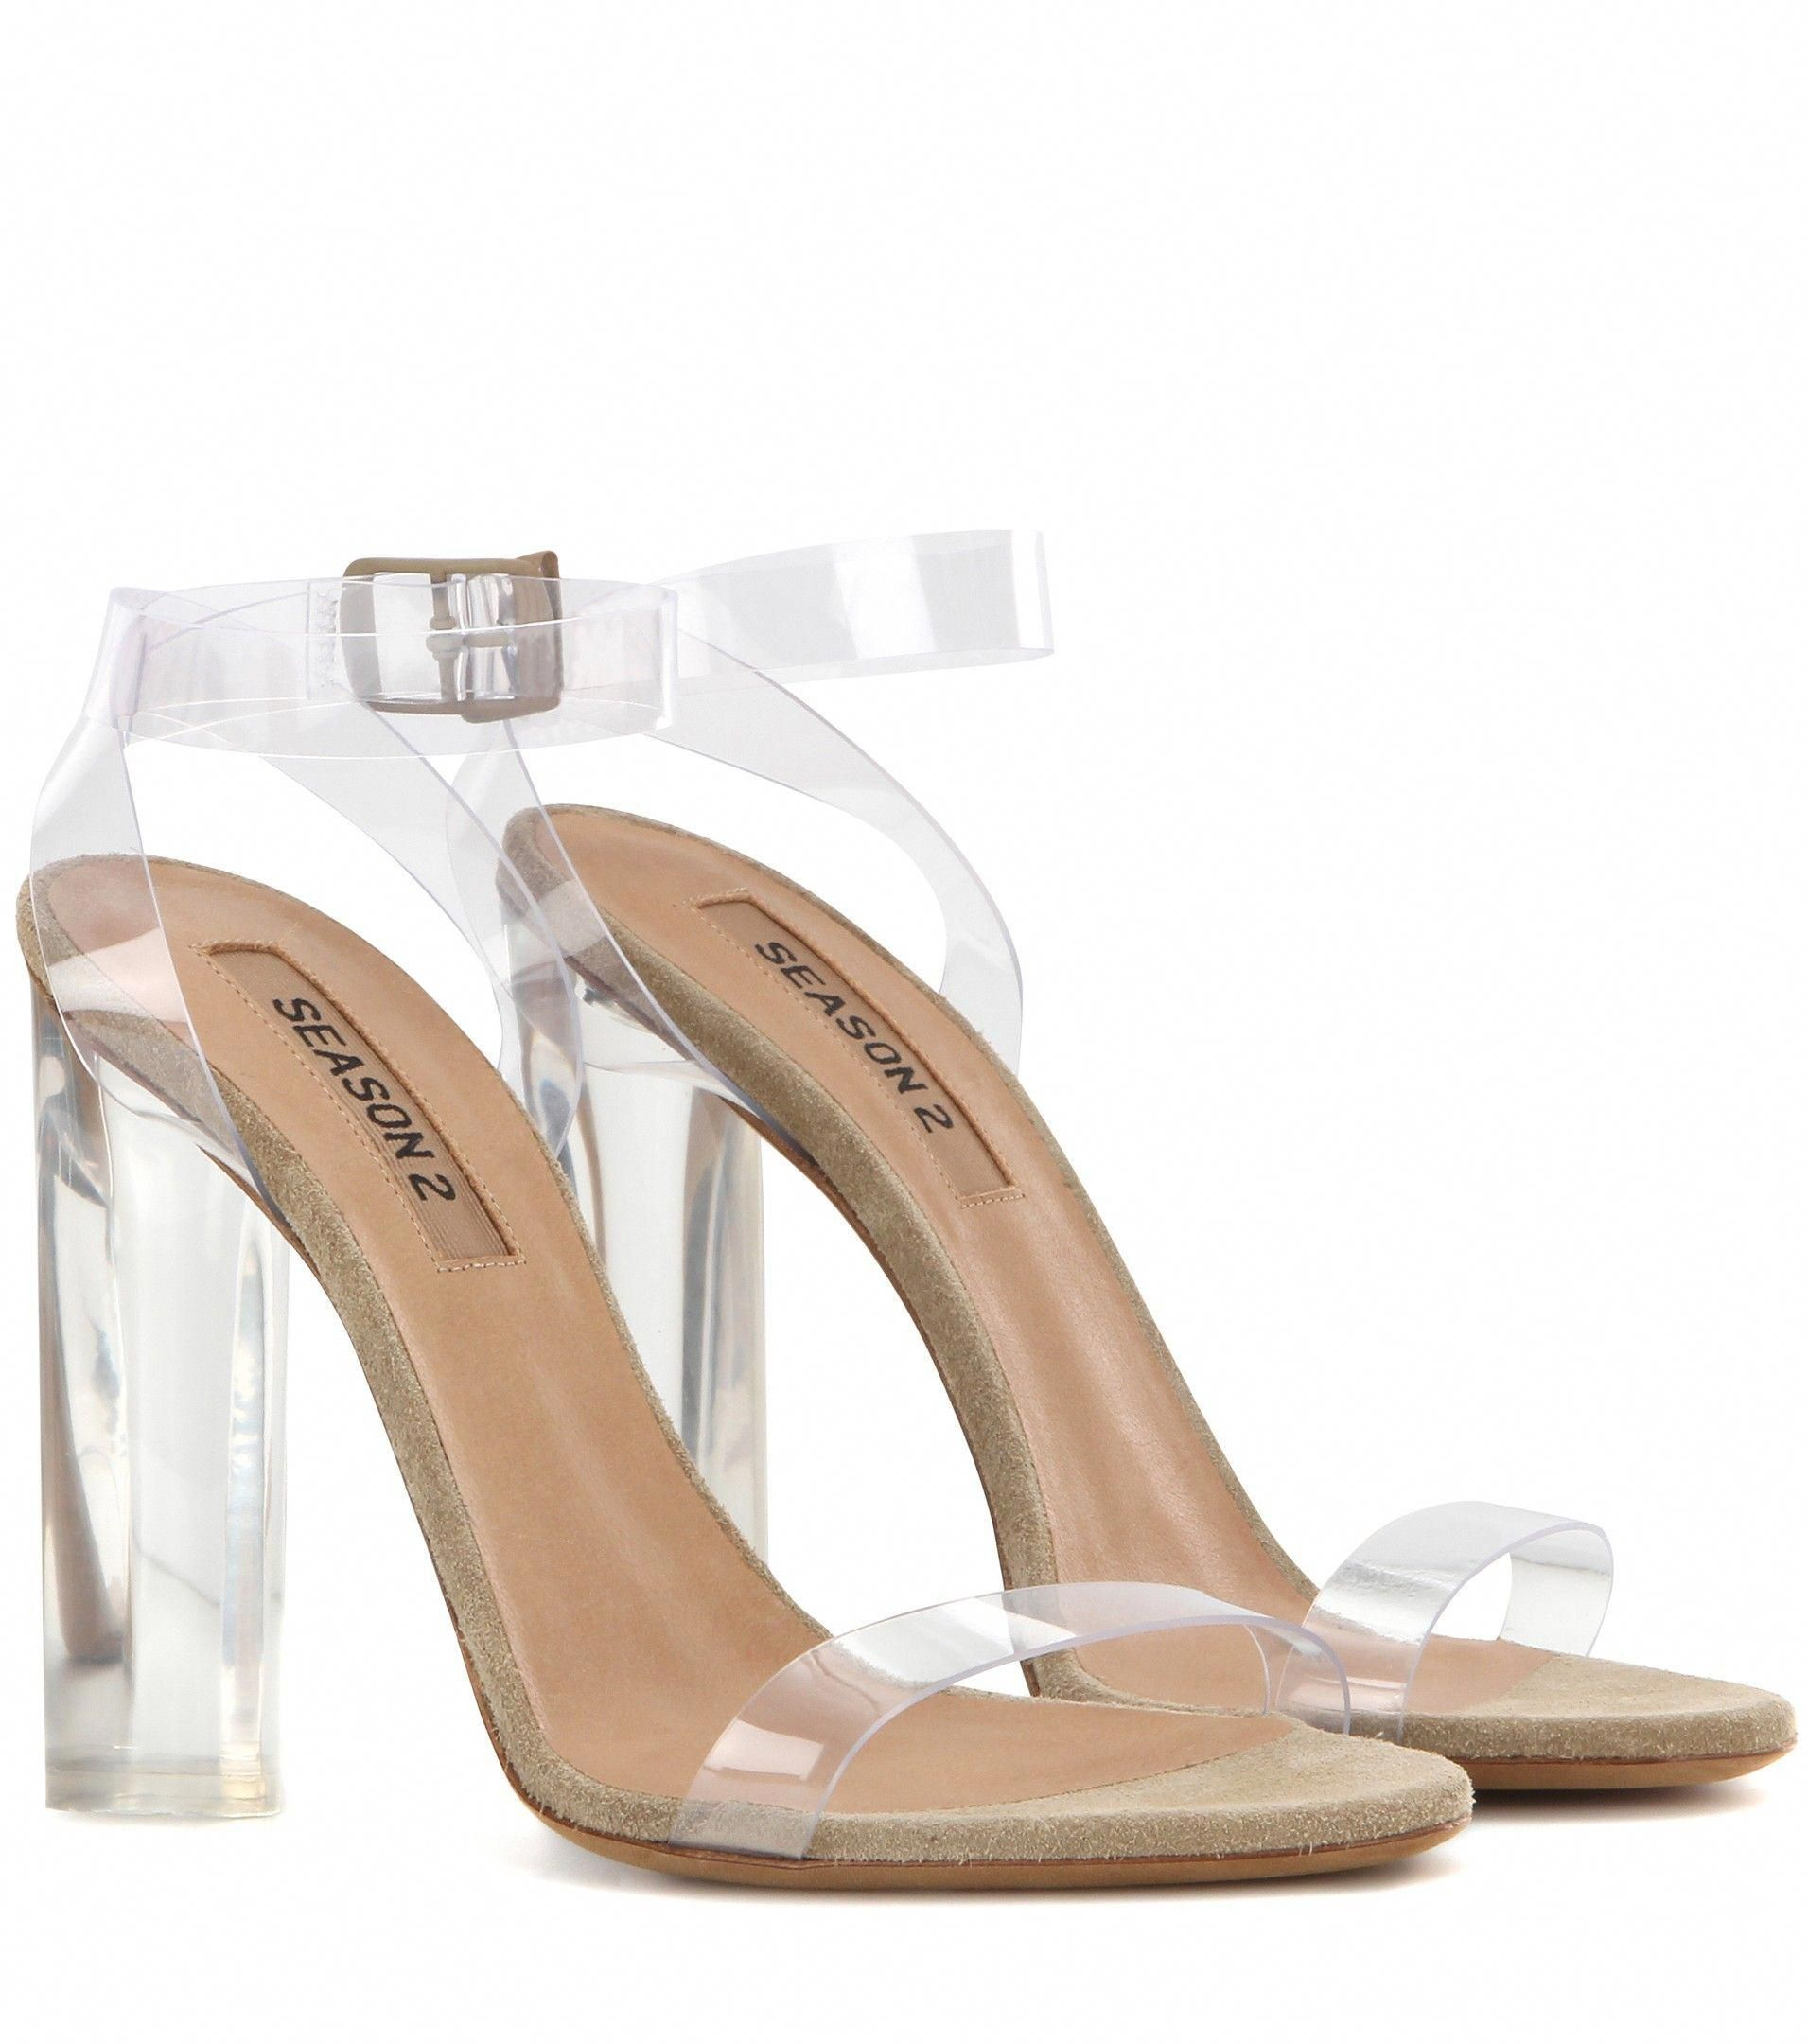 6f27512cb mytheresa.com - Transparent sandals (Season 2) - Luxury Fashion for Women    Designer clothing